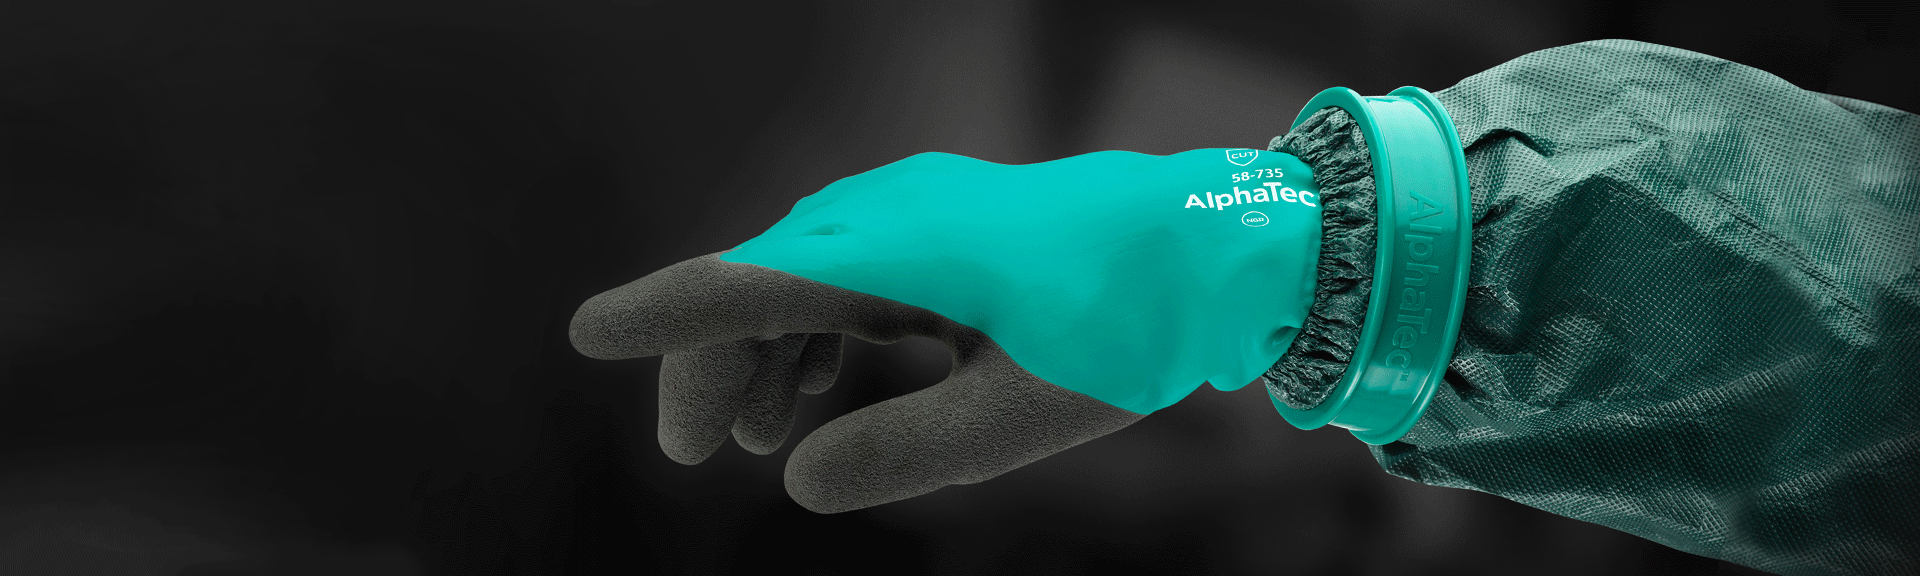 AlphaTec Glove Connector-Ansell